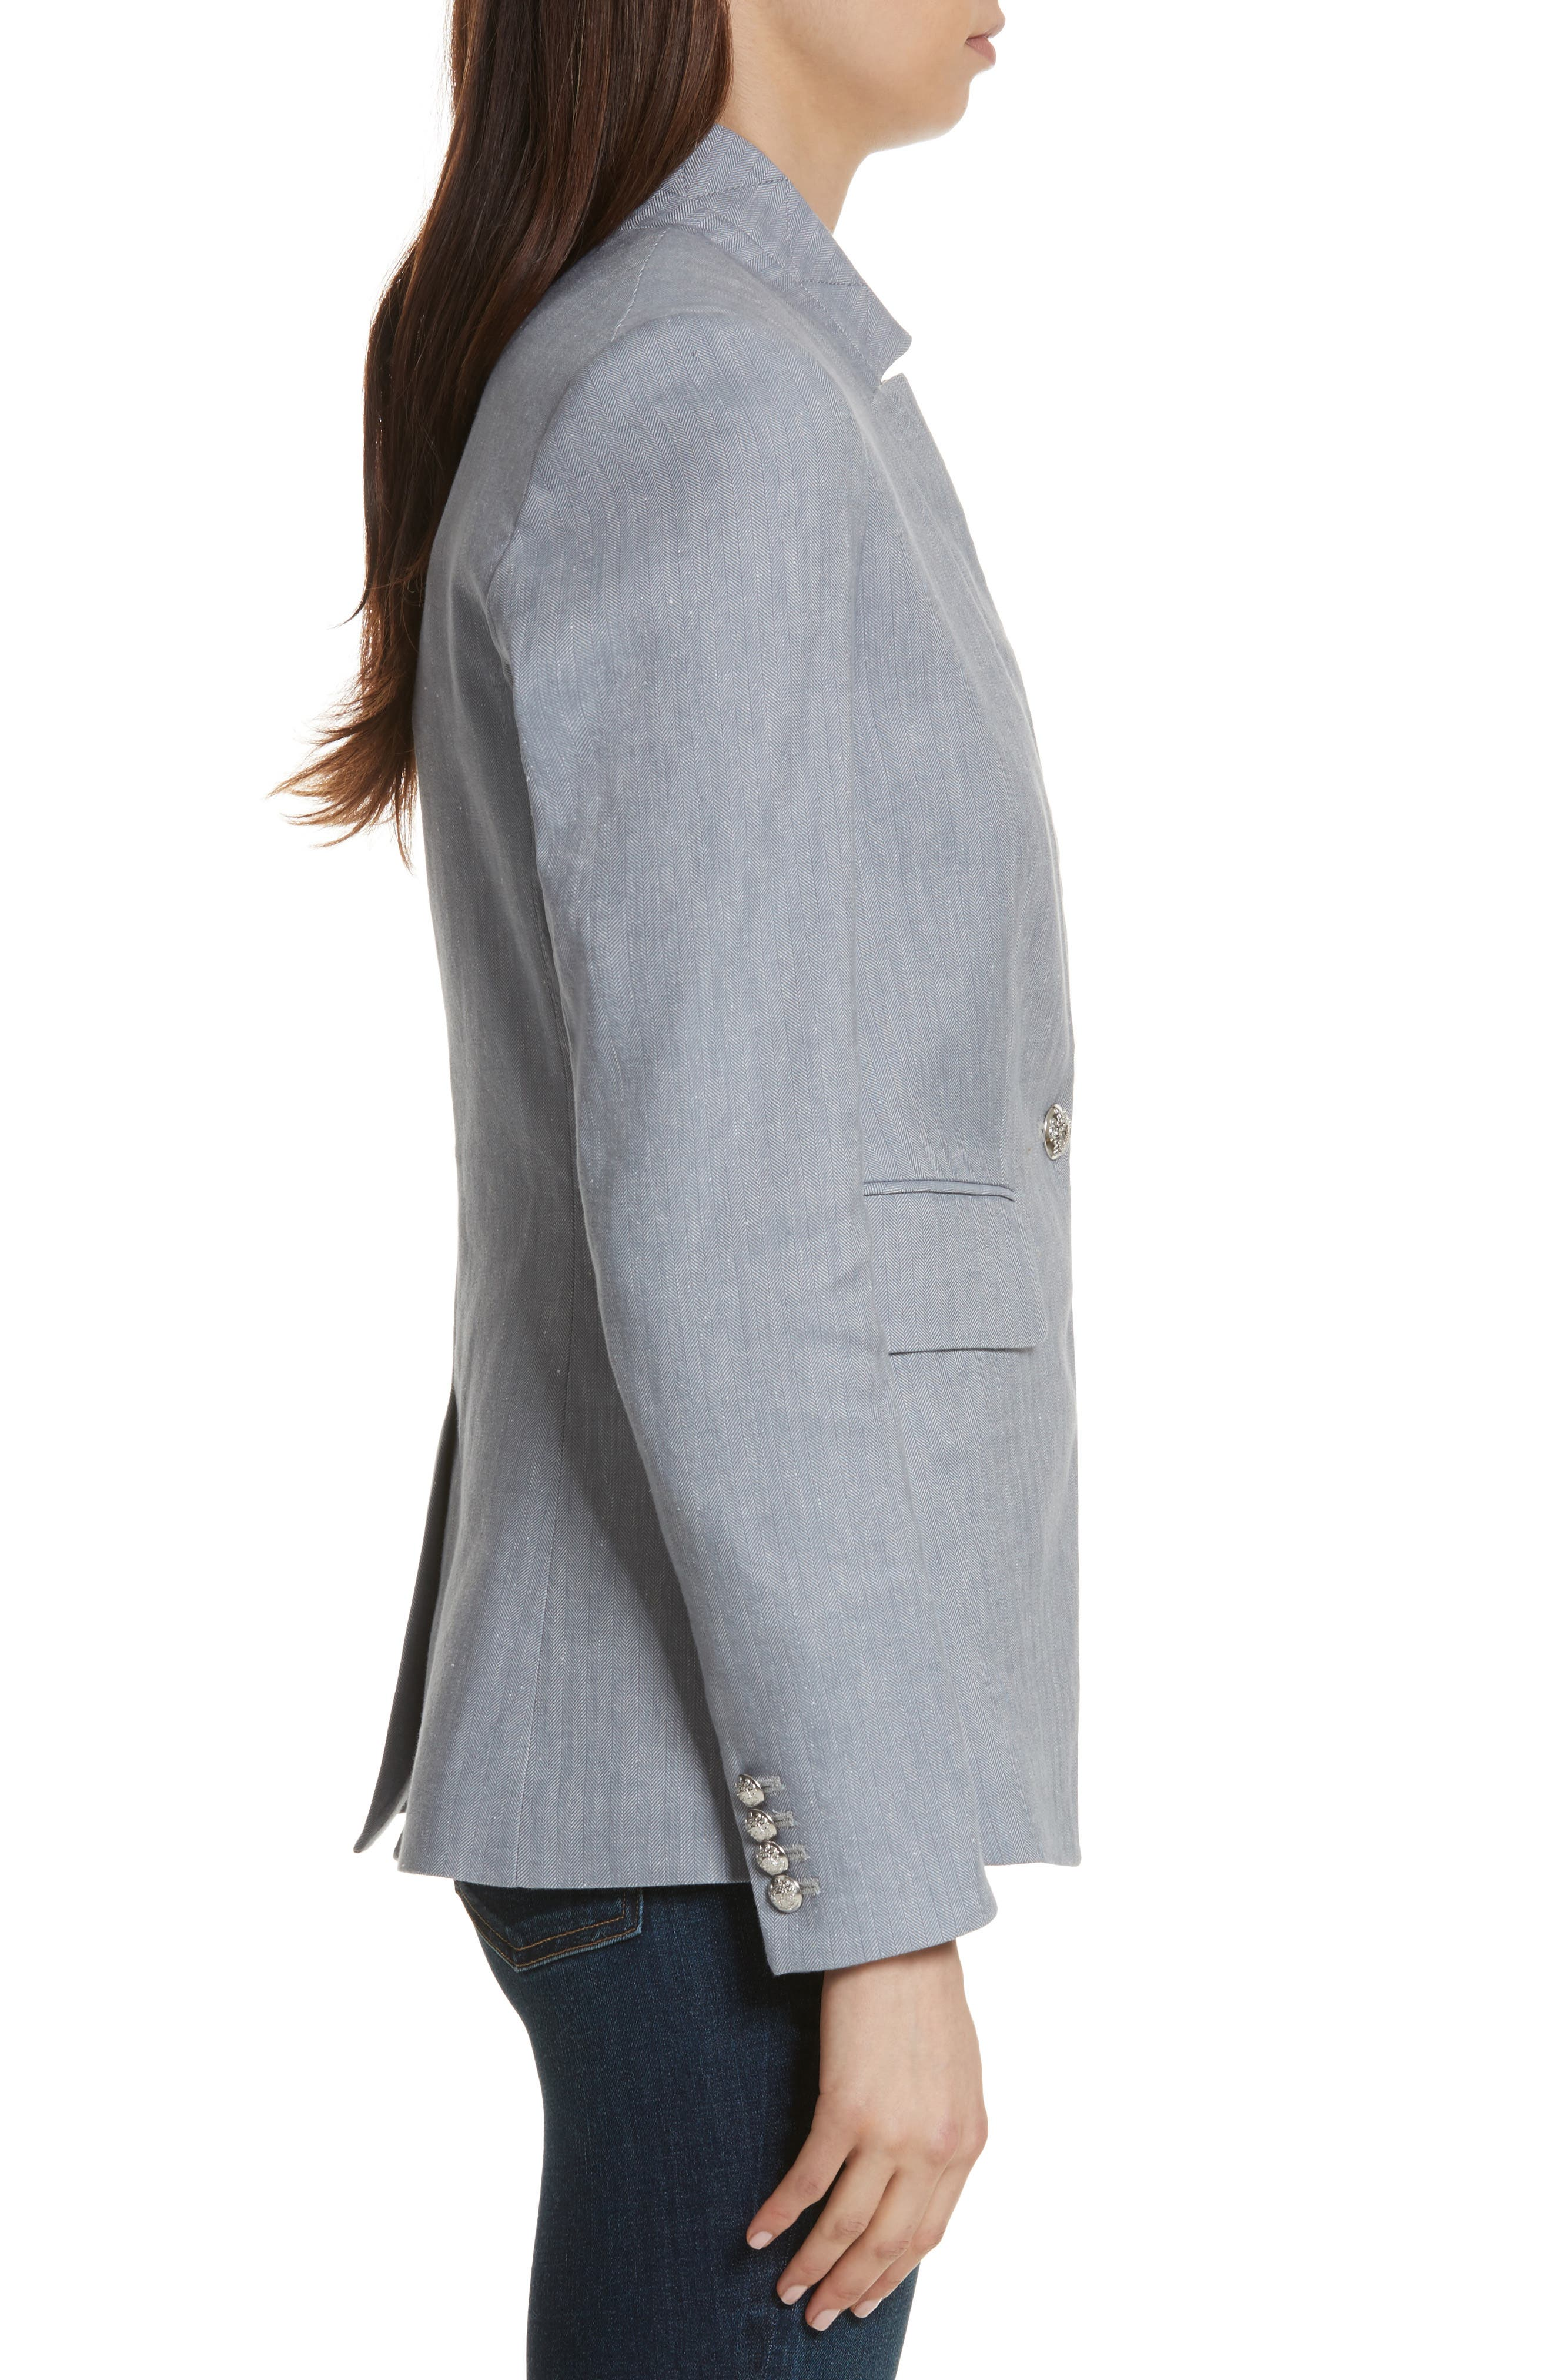 Upcollar Jacket,                             Alternate thumbnail 3, color,                             050